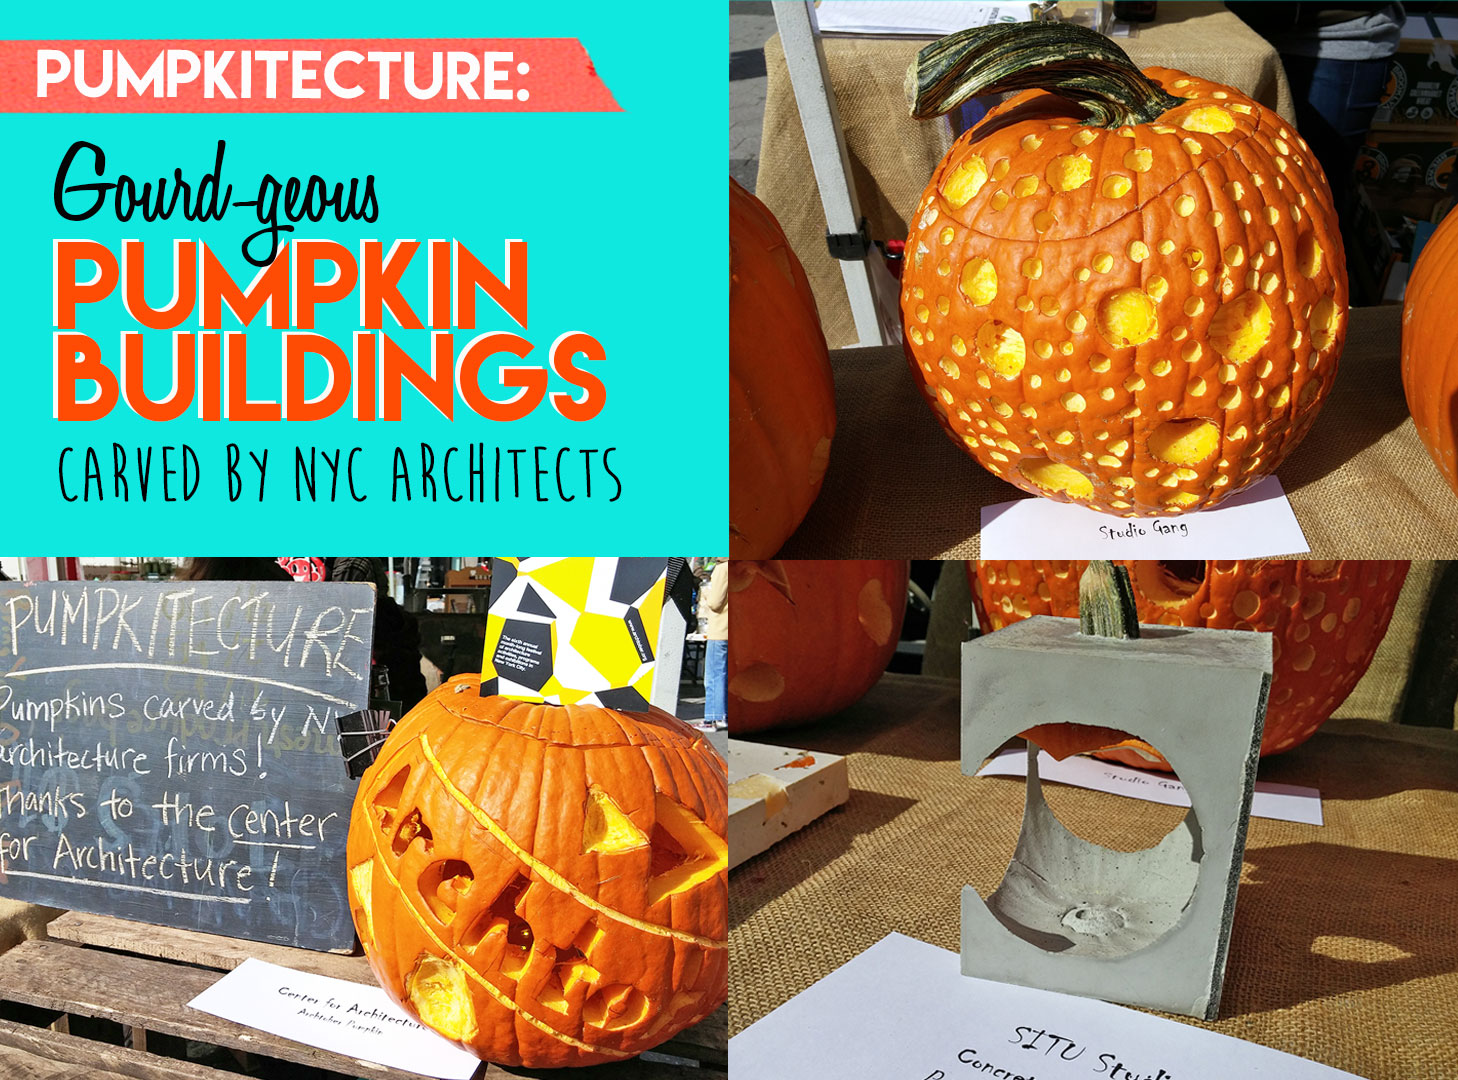 Pumpkitecture: Architects live-carve pumpkins into gourd-geous iconic buildings